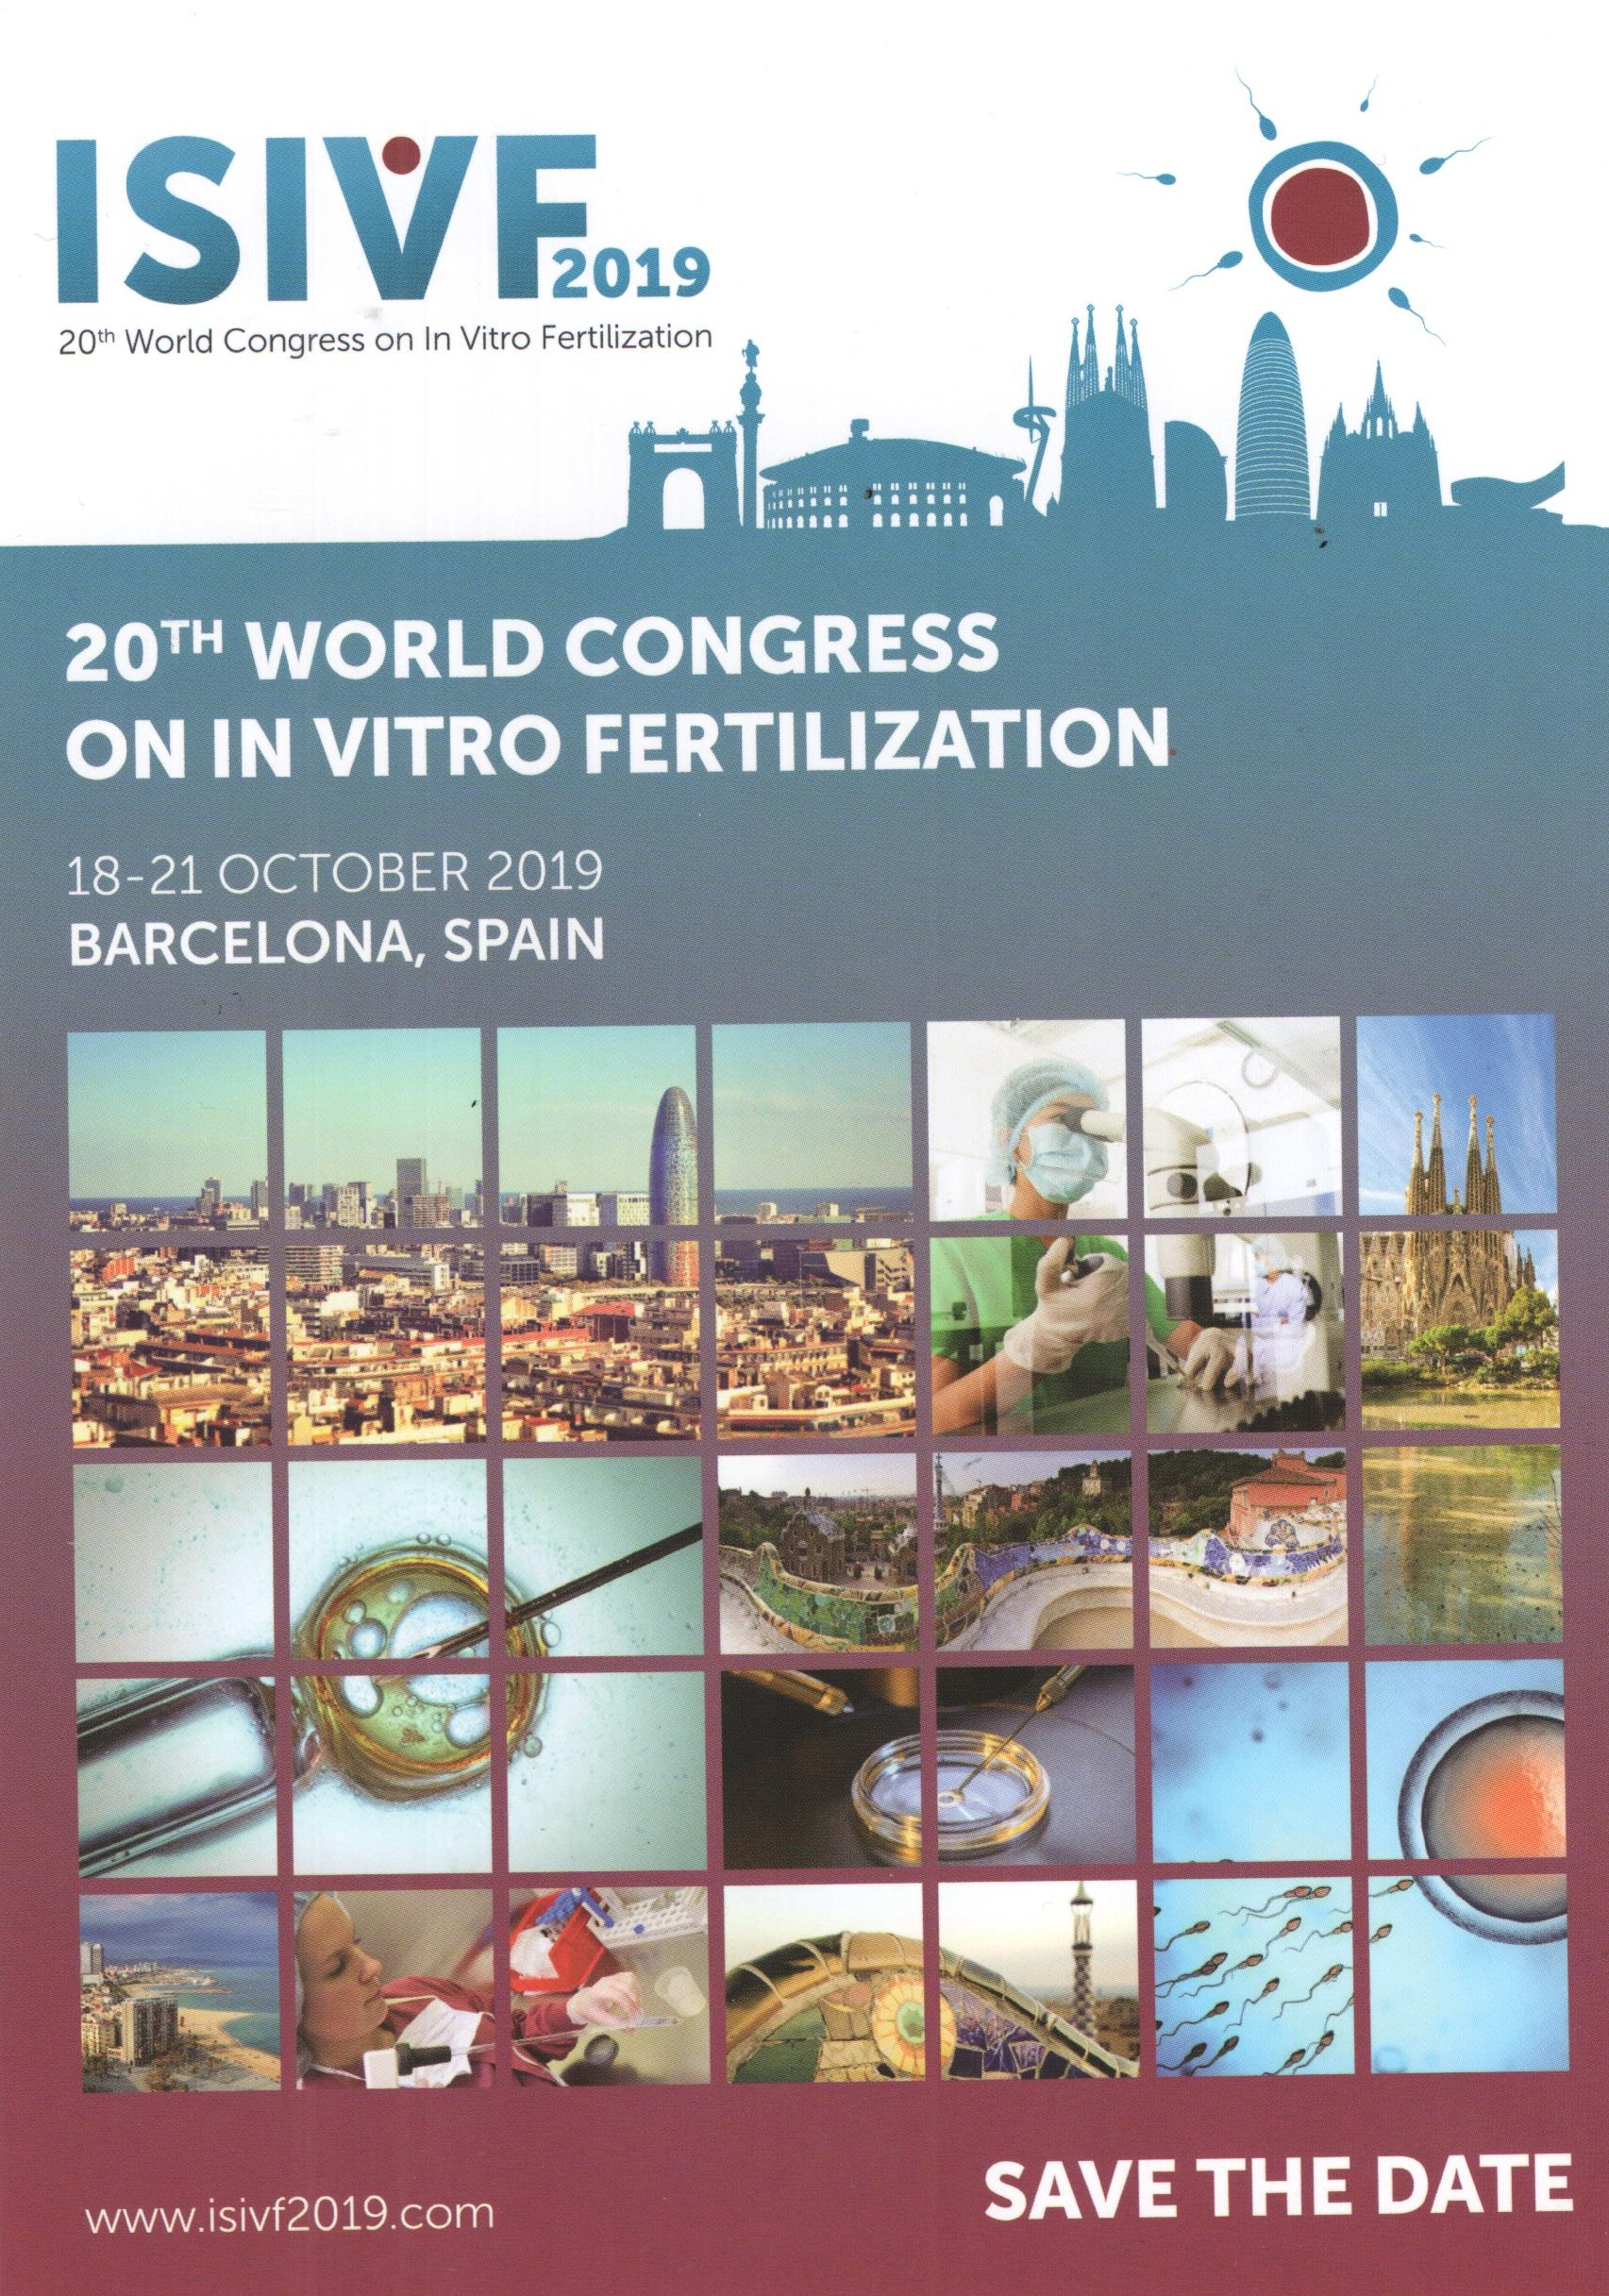 20TH WORLD CONGRESS ON IN VITRO FERTILIZATION